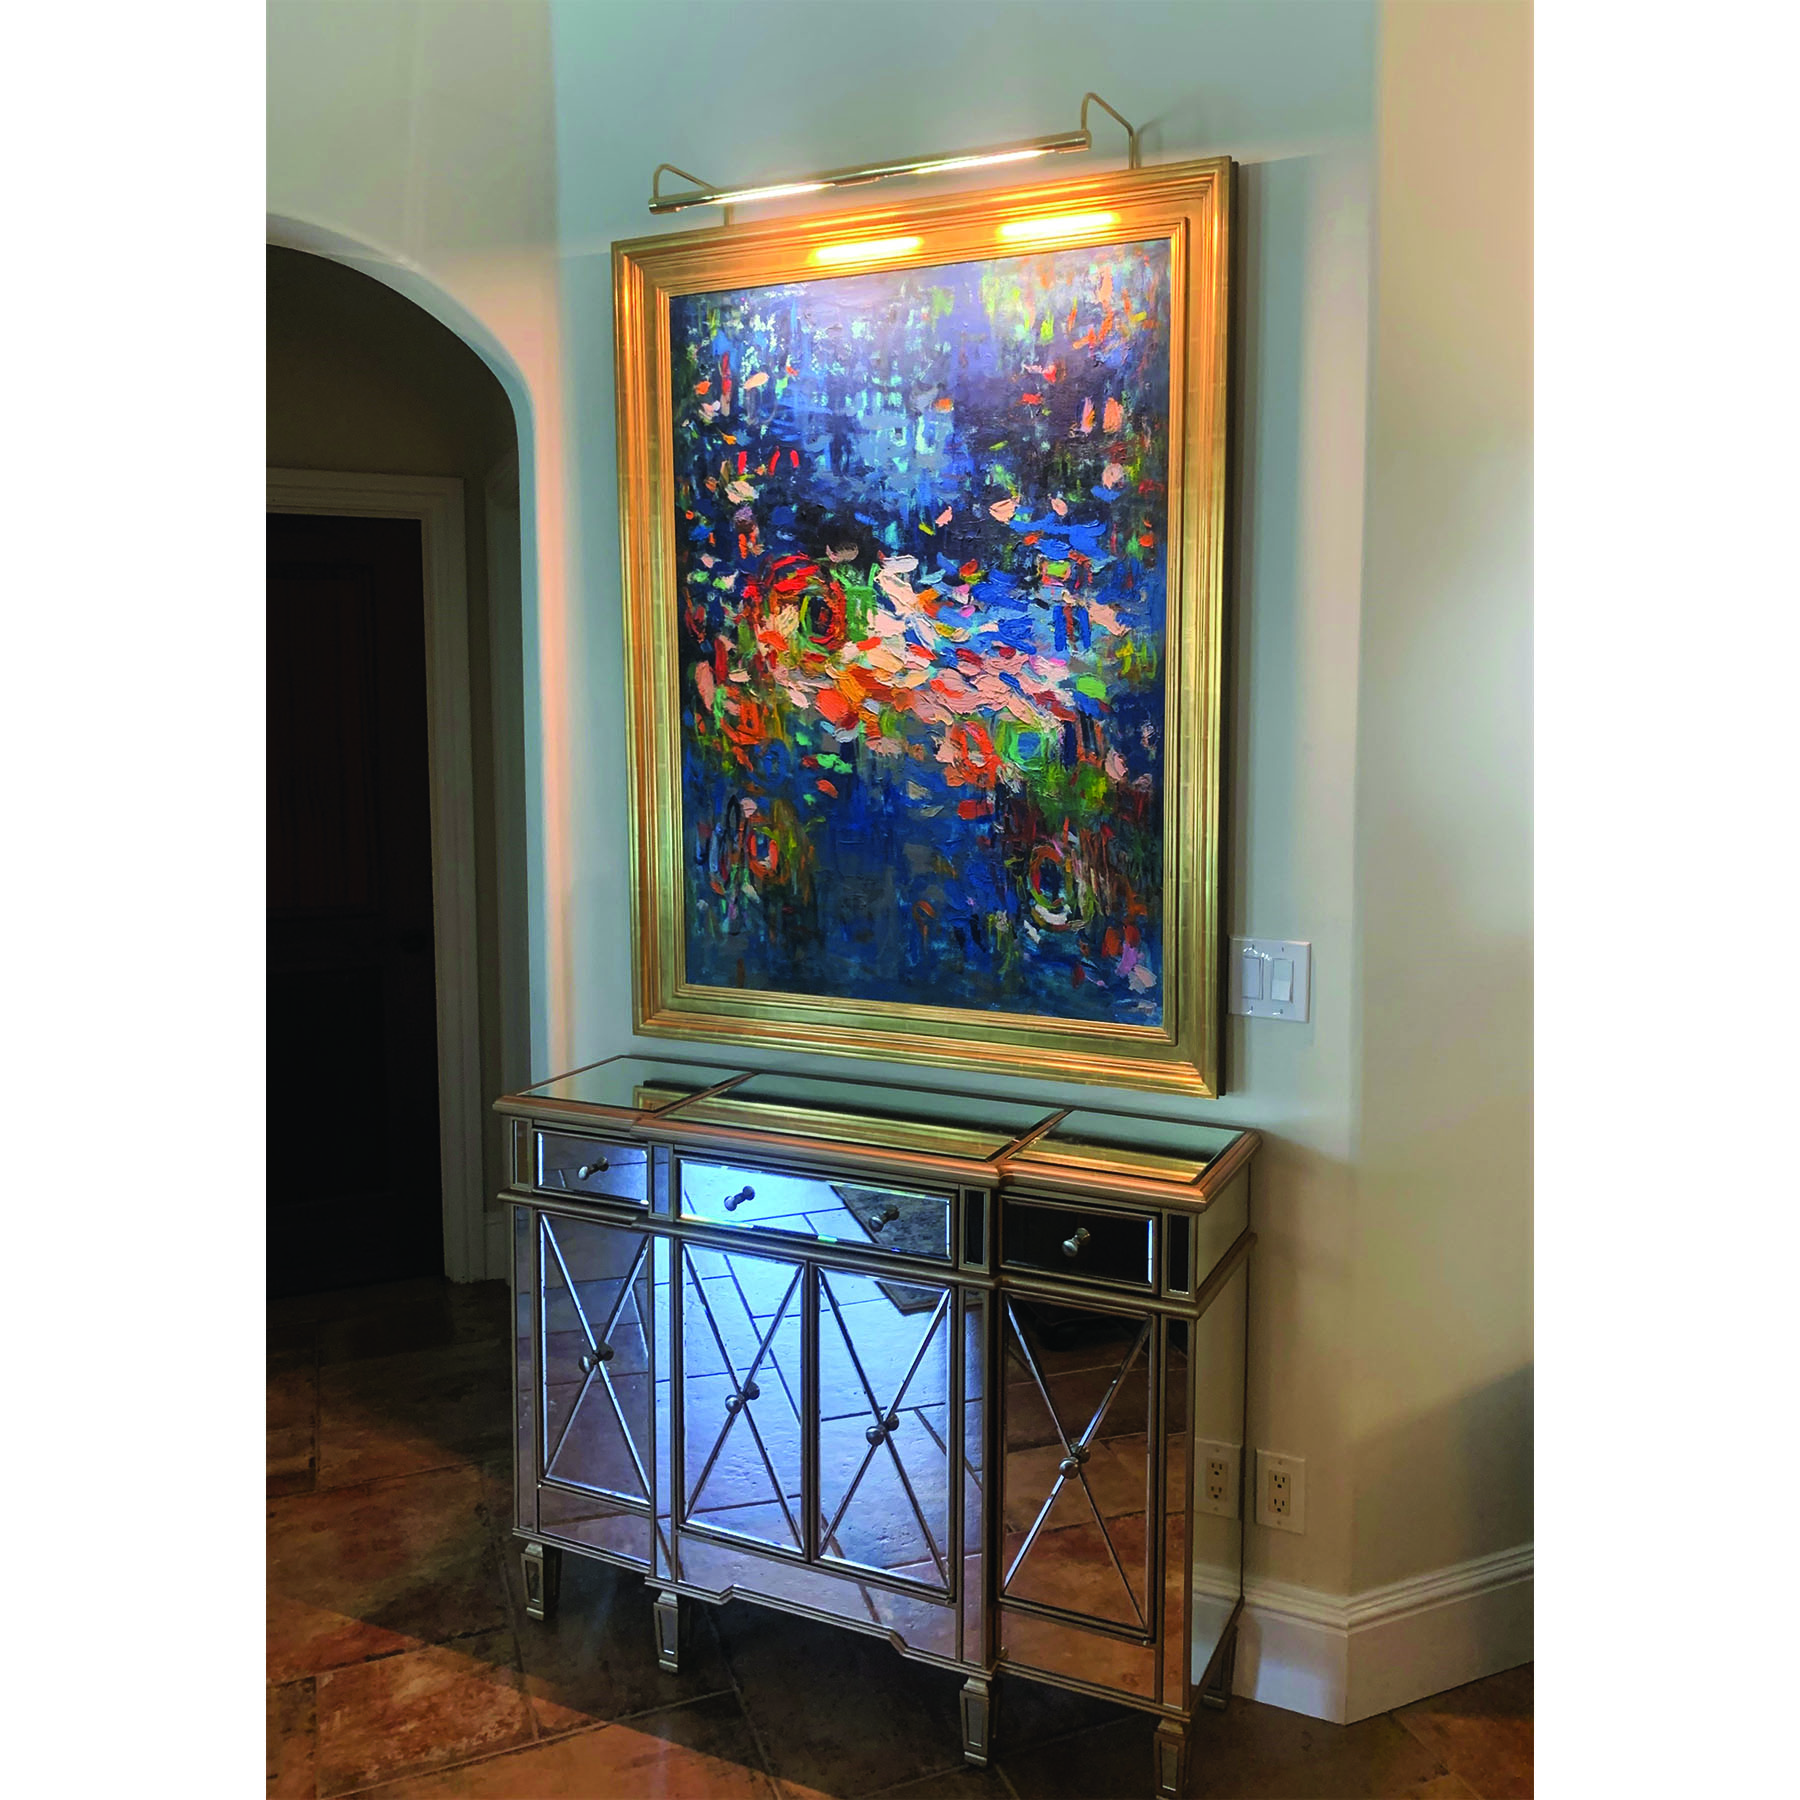 Abstract painting with gold frame installed in a home